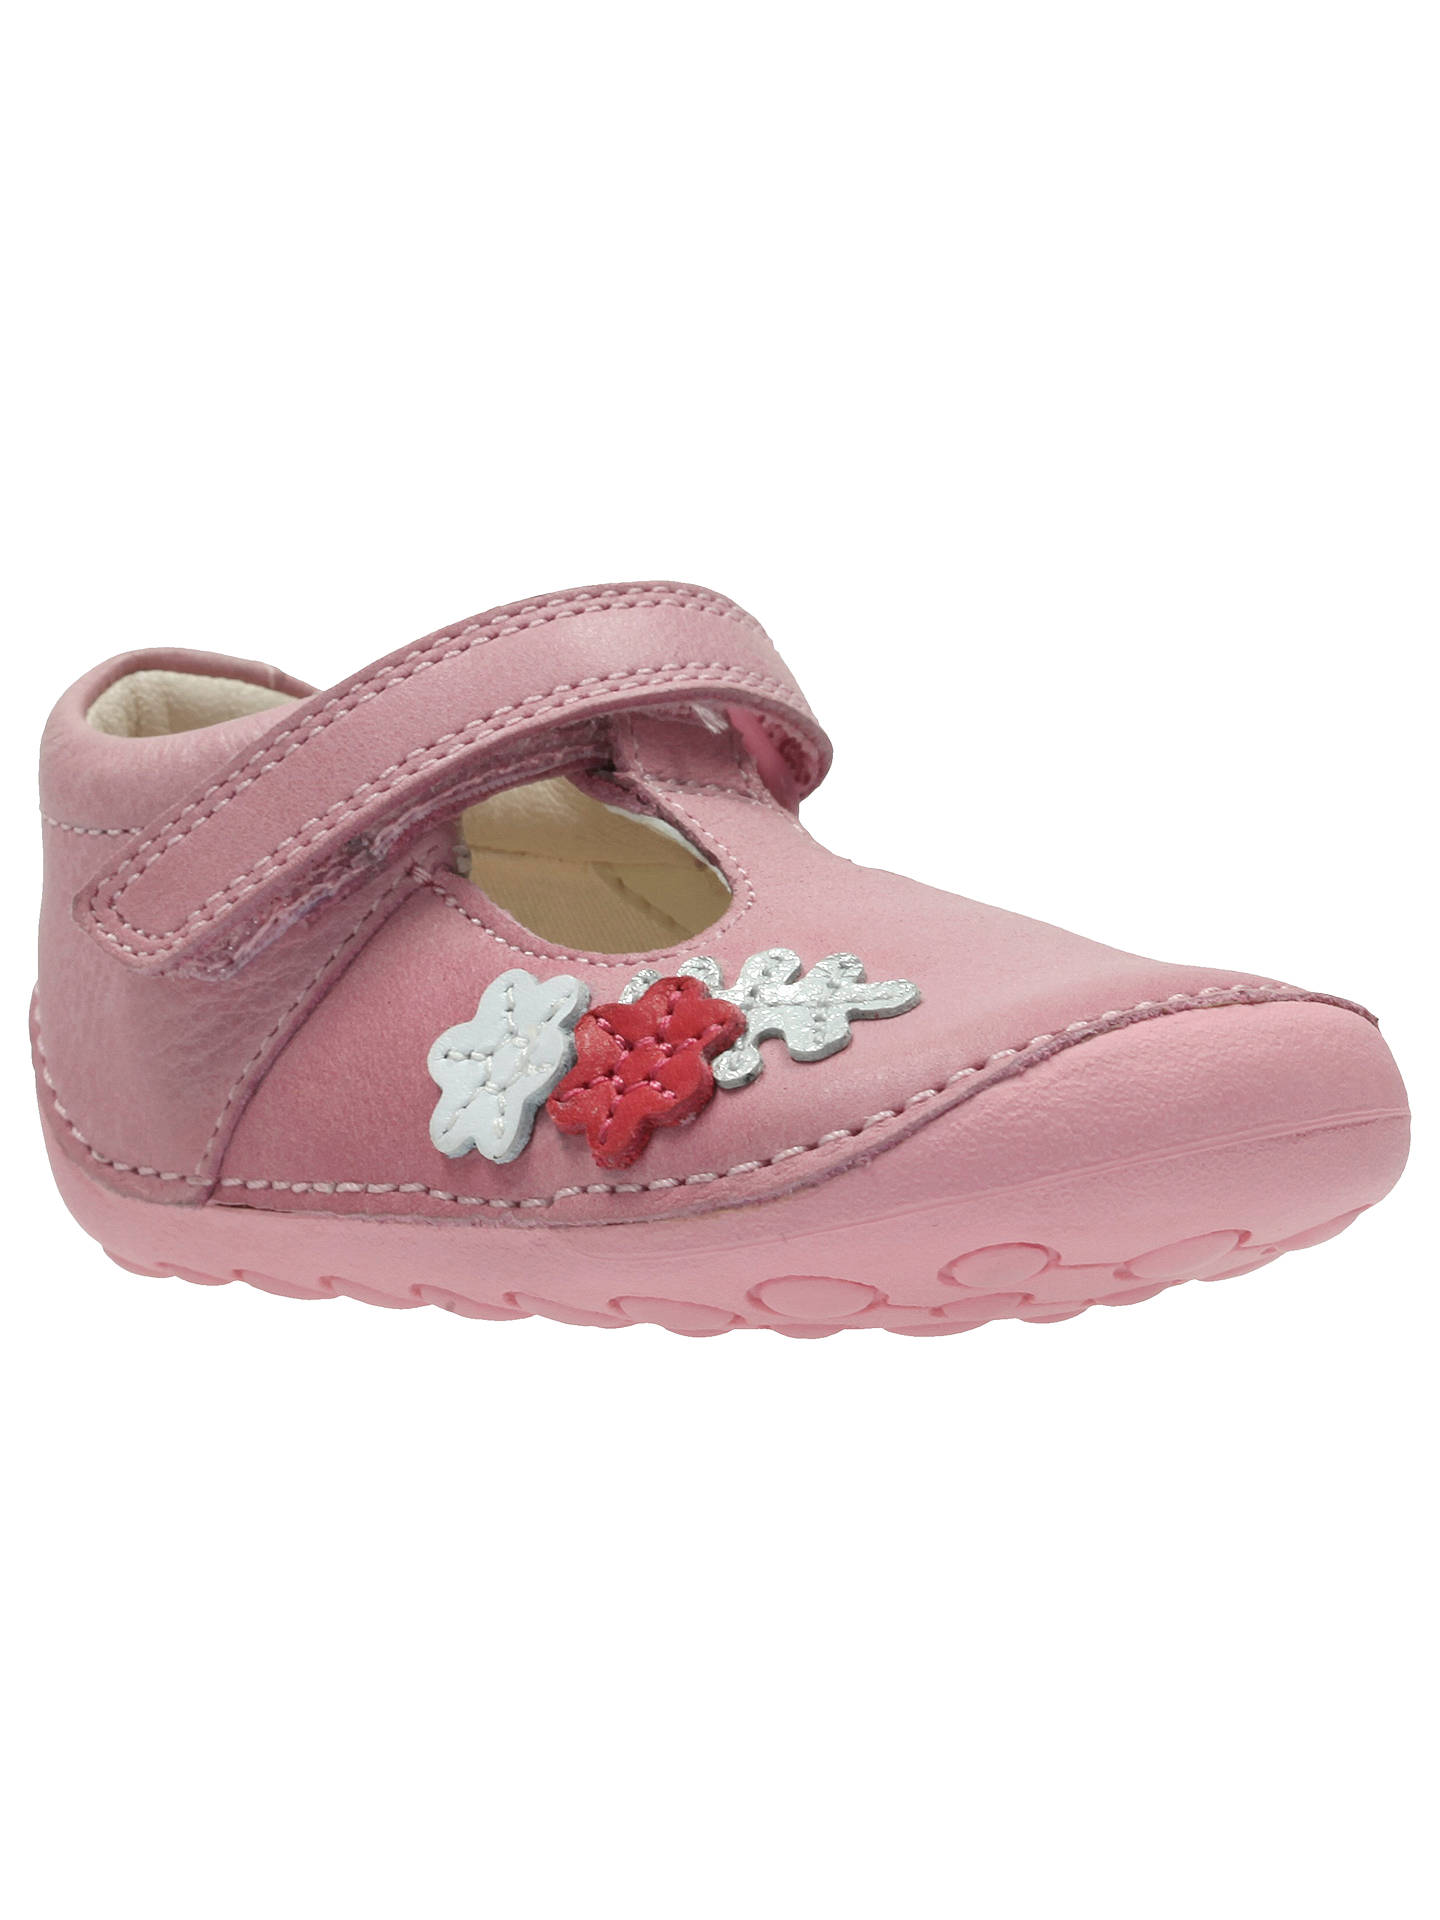 9f49aedbe947 Buy Clarks Children s Tiny Blossom Pre-Walker Shoes